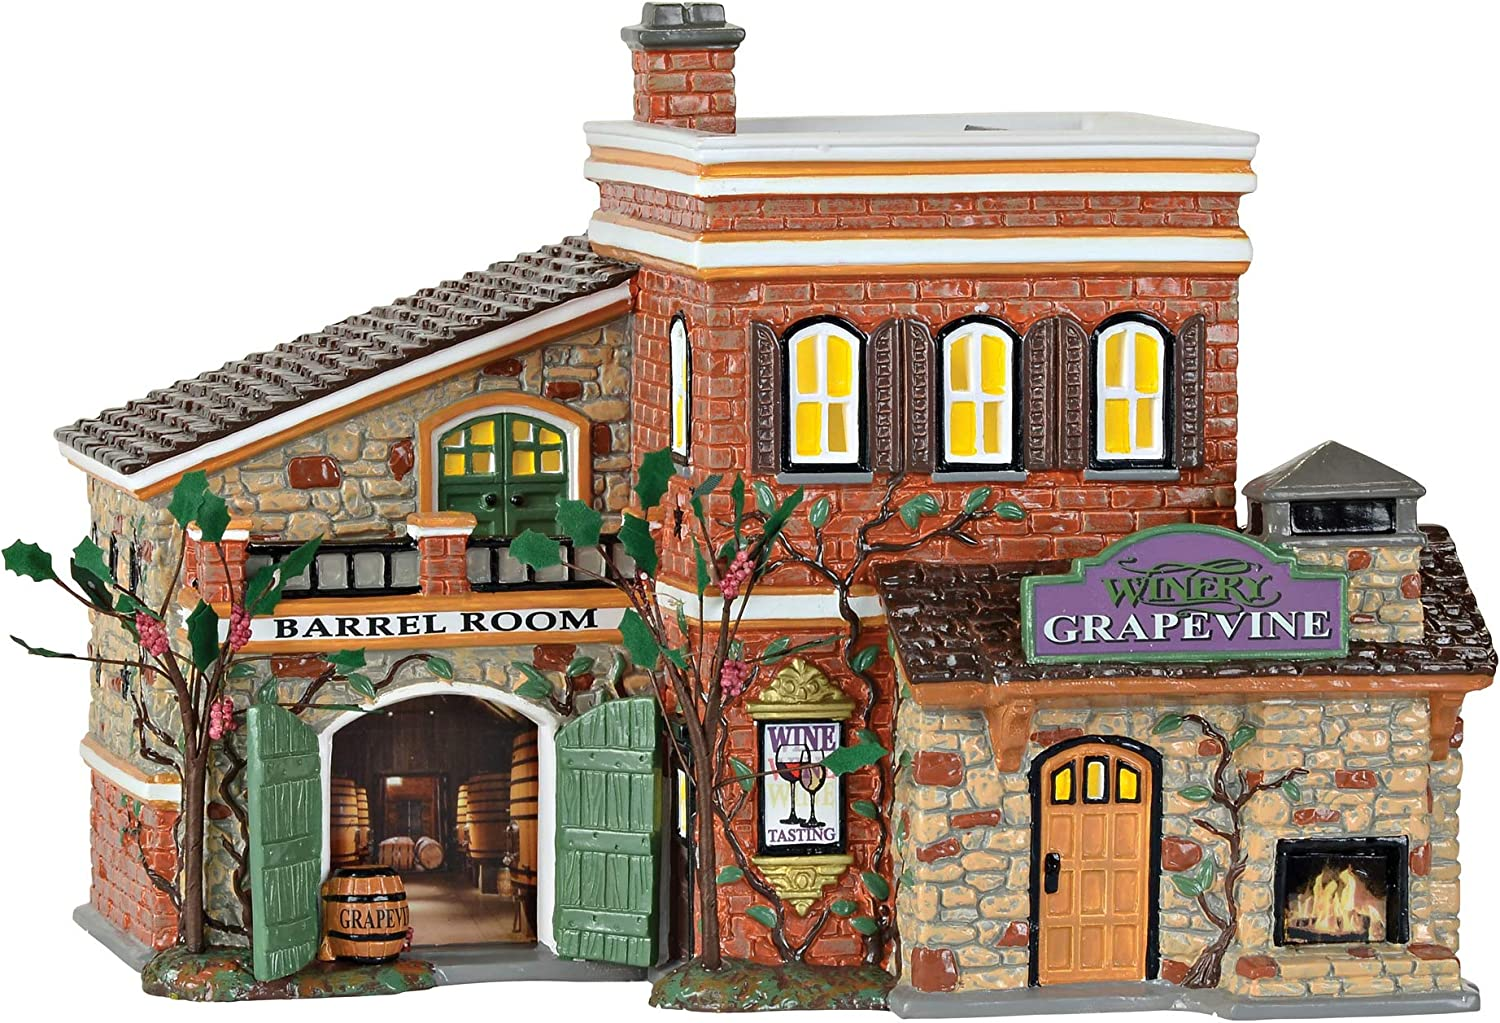 Department 56 Snow Grapevine Winery Columbus Mall Lit Building Now free shipping Multic Village